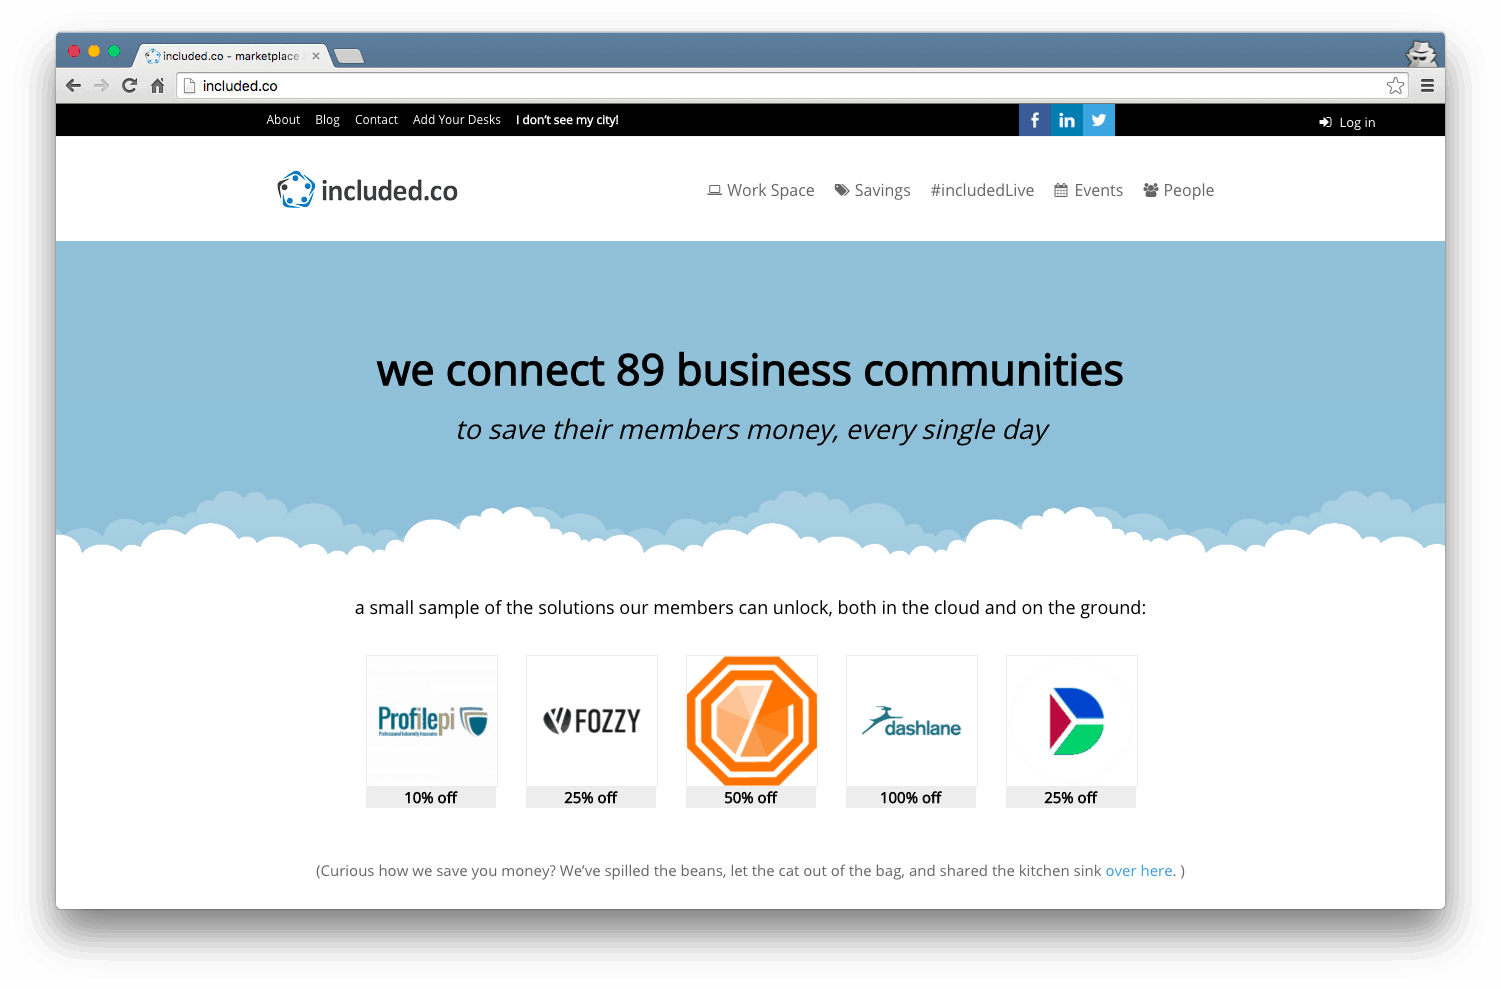 Included.co Integration